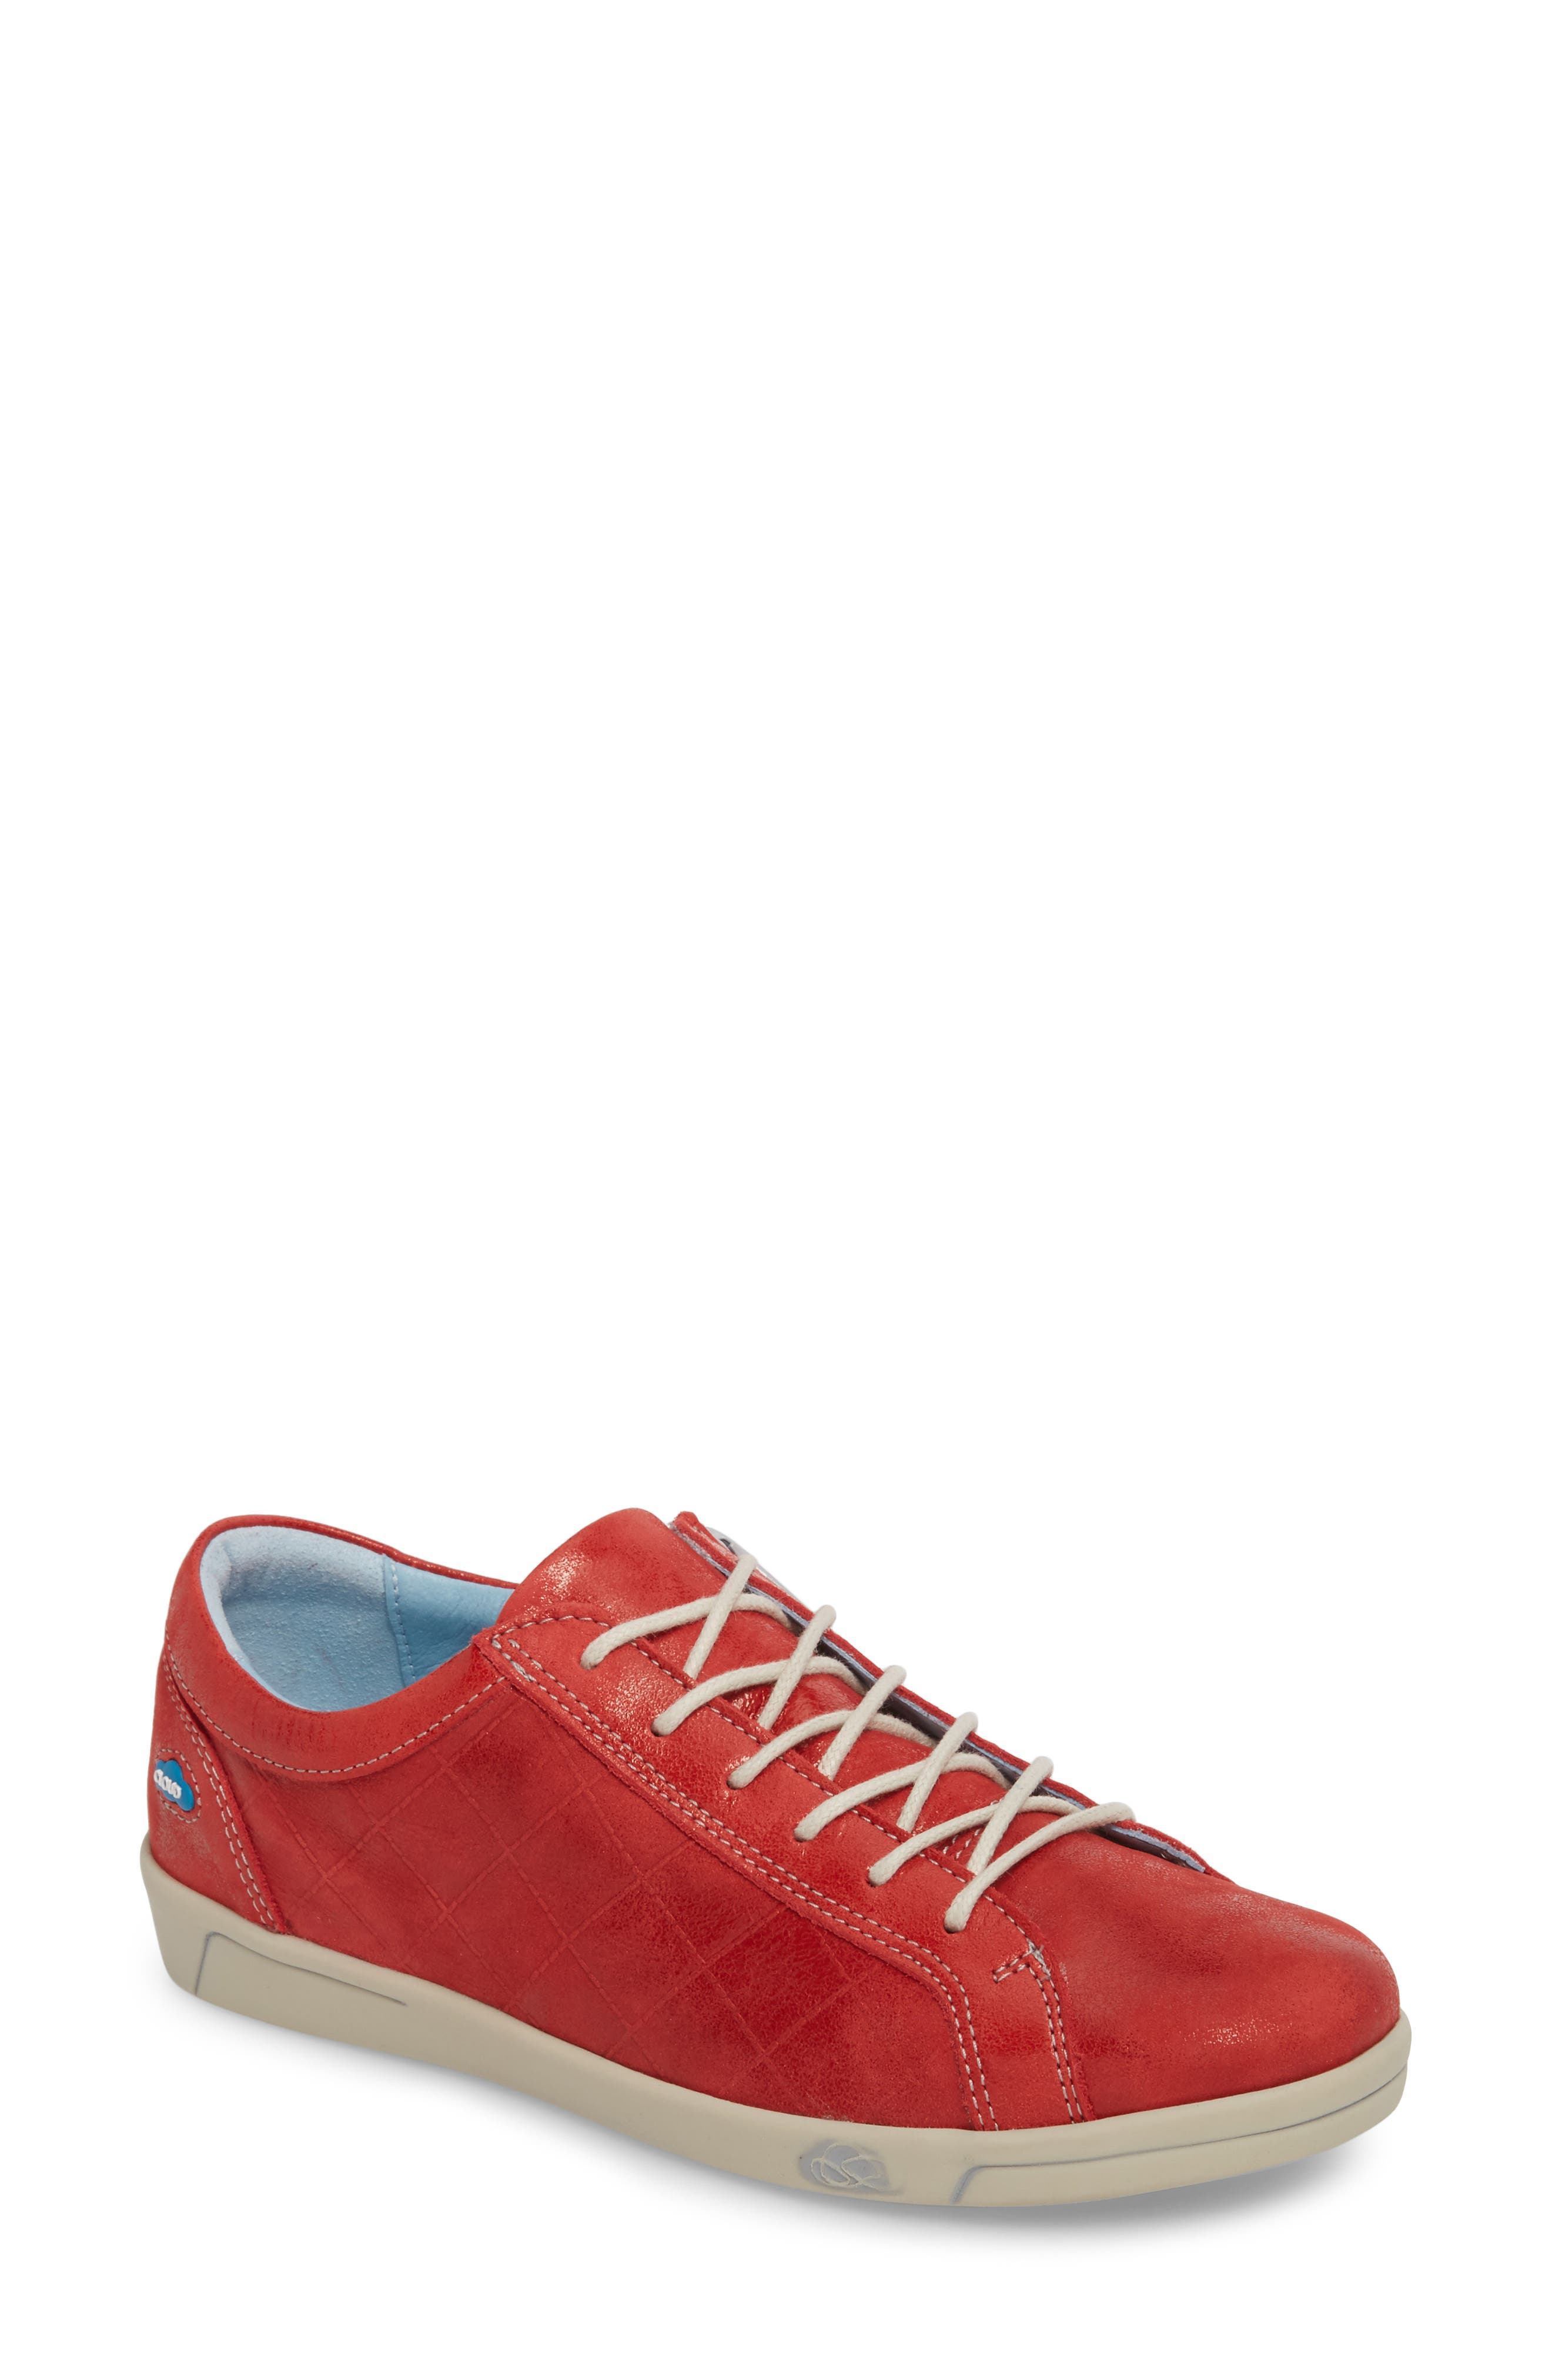 Alessia Sneaker,                         Main,                         color, Red Stinger Leather